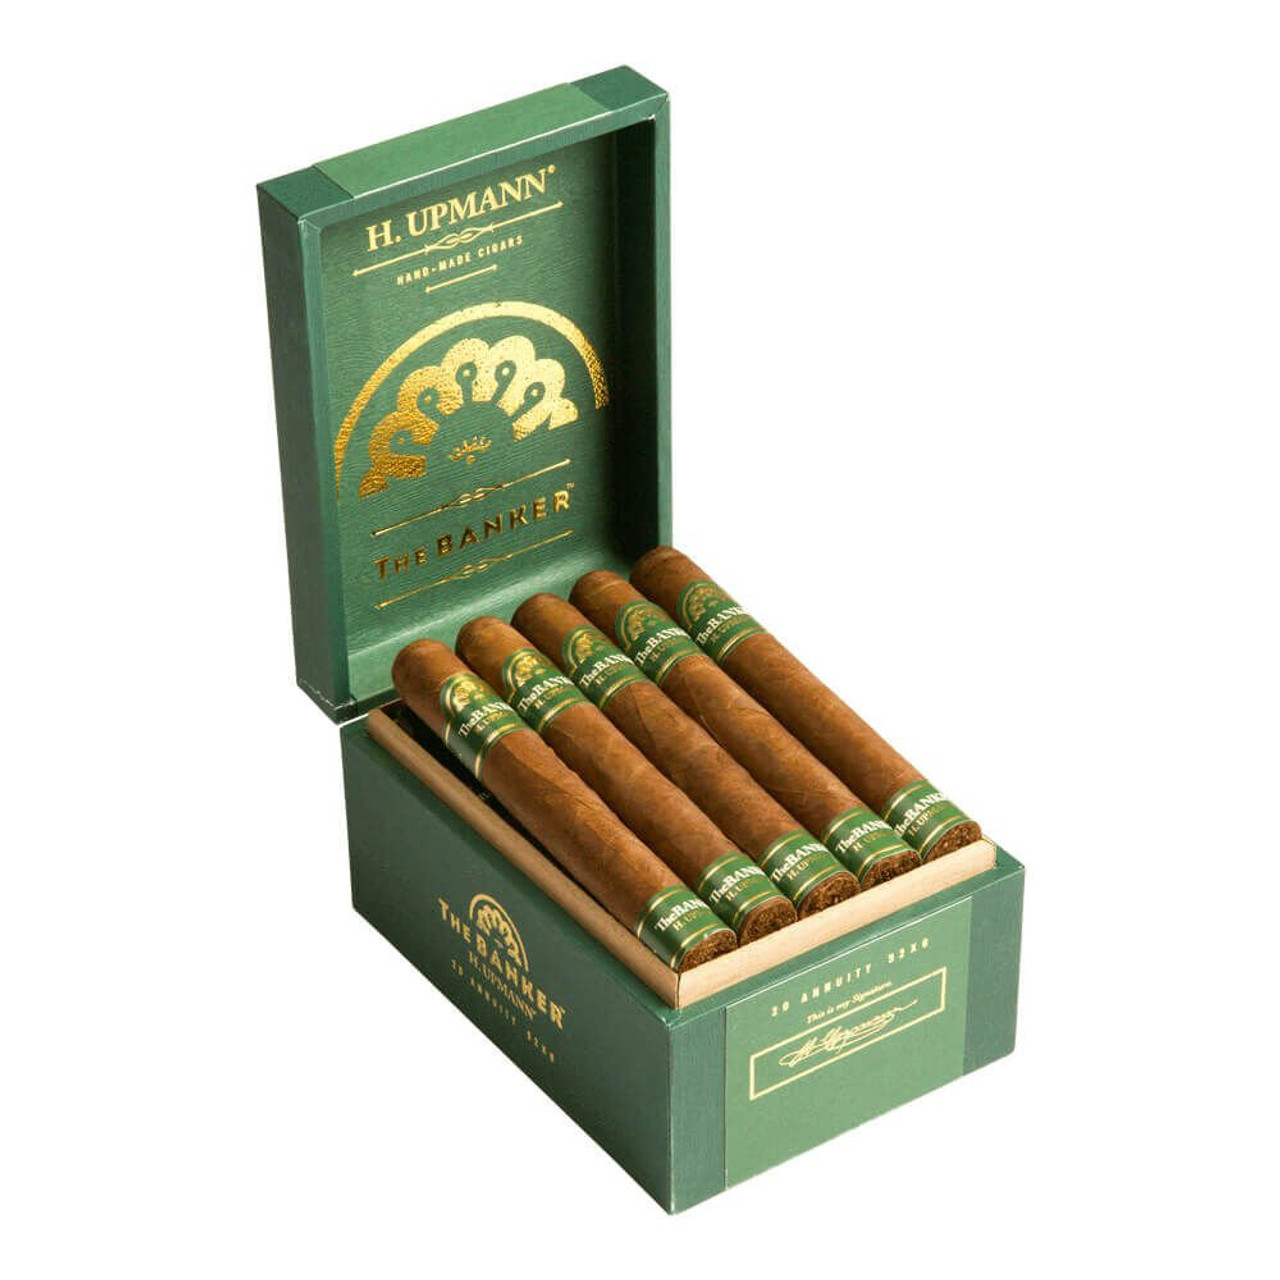 H. Upmann The Banker Currency Cigars - 5.5 x 48 (Box of 20)